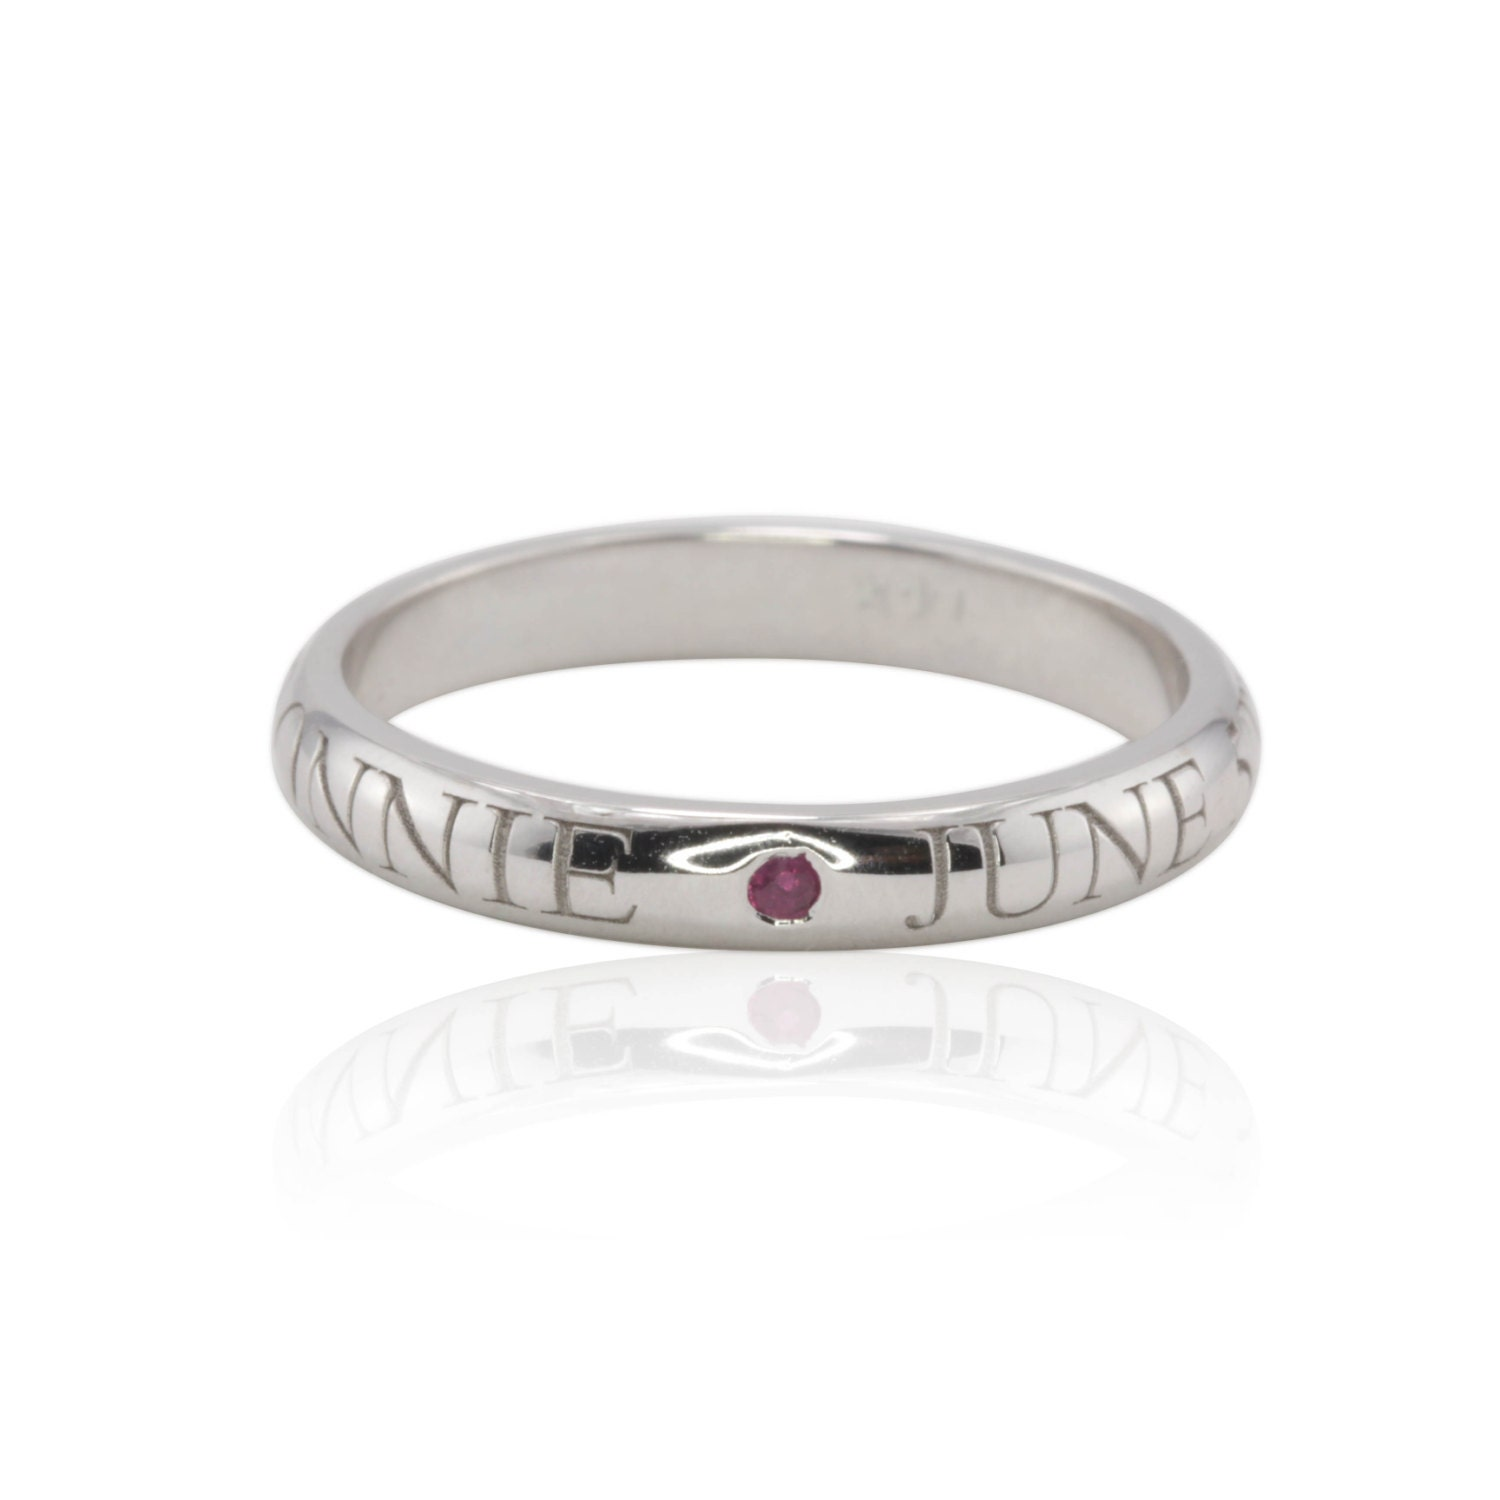 mother 39 s ring with engraved names white gold engraved. Black Bedroom Furniture Sets. Home Design Ideas